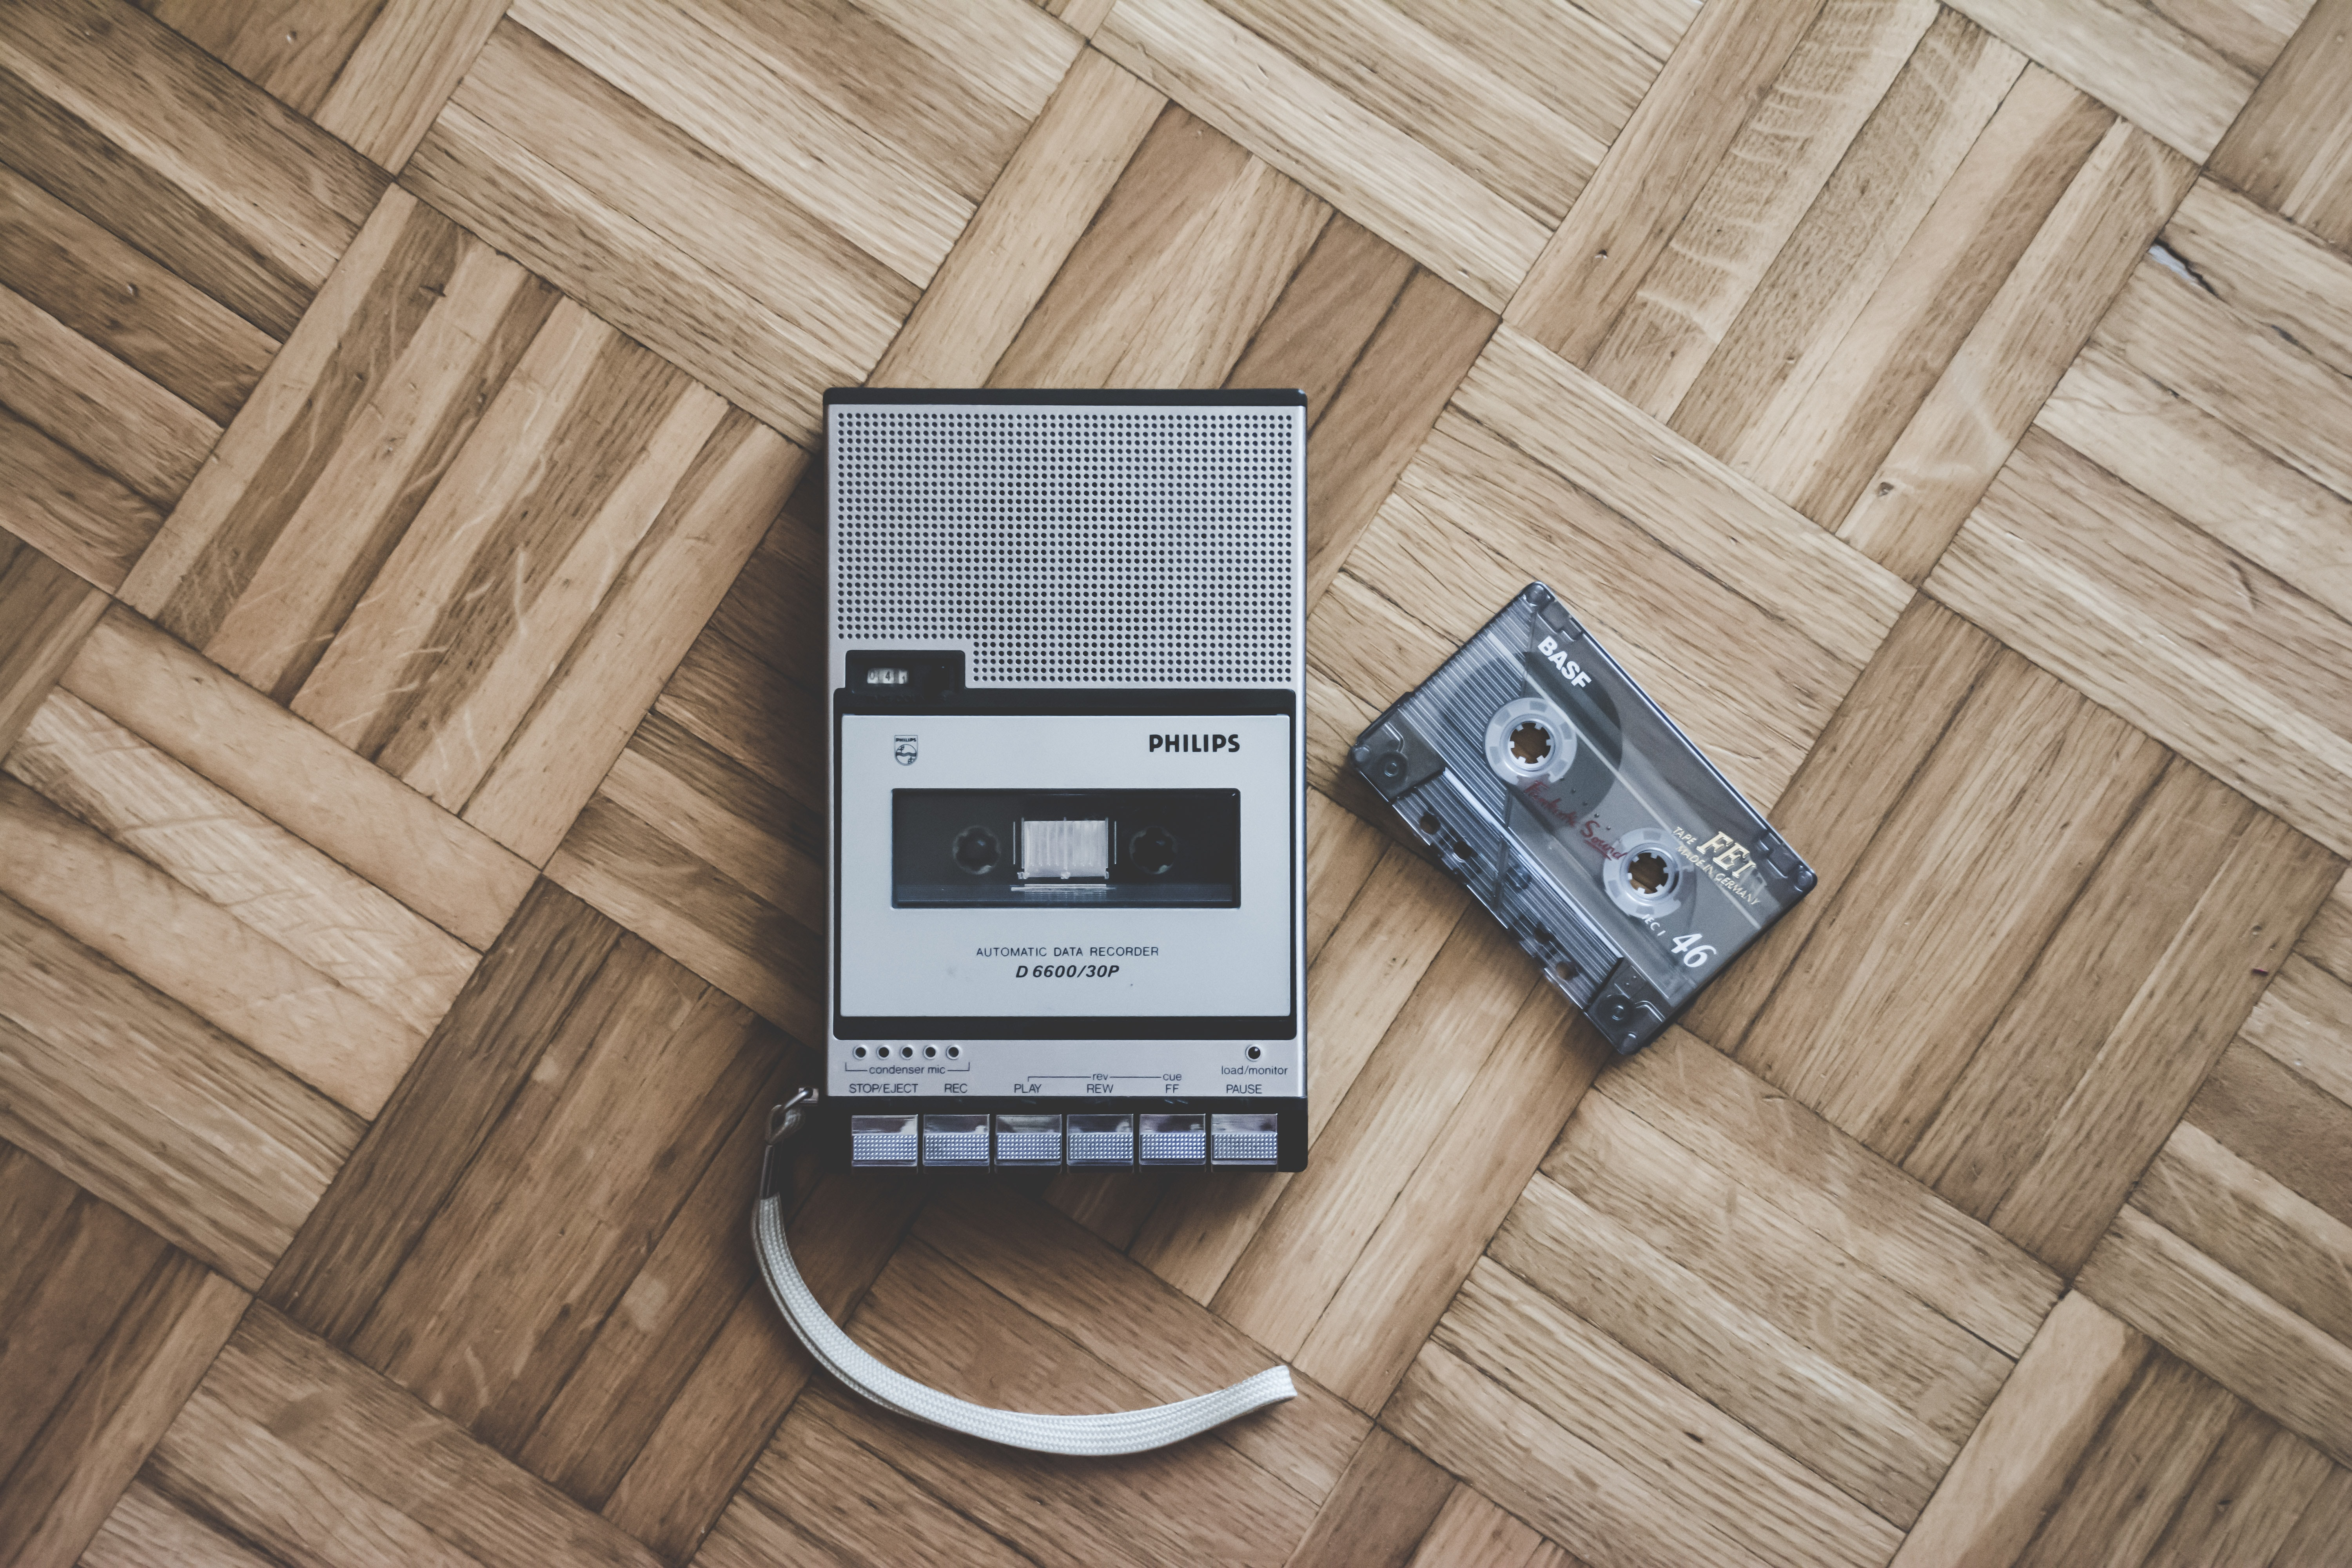 An old Philips cassette player and tape laying on a wooden floor in Italy